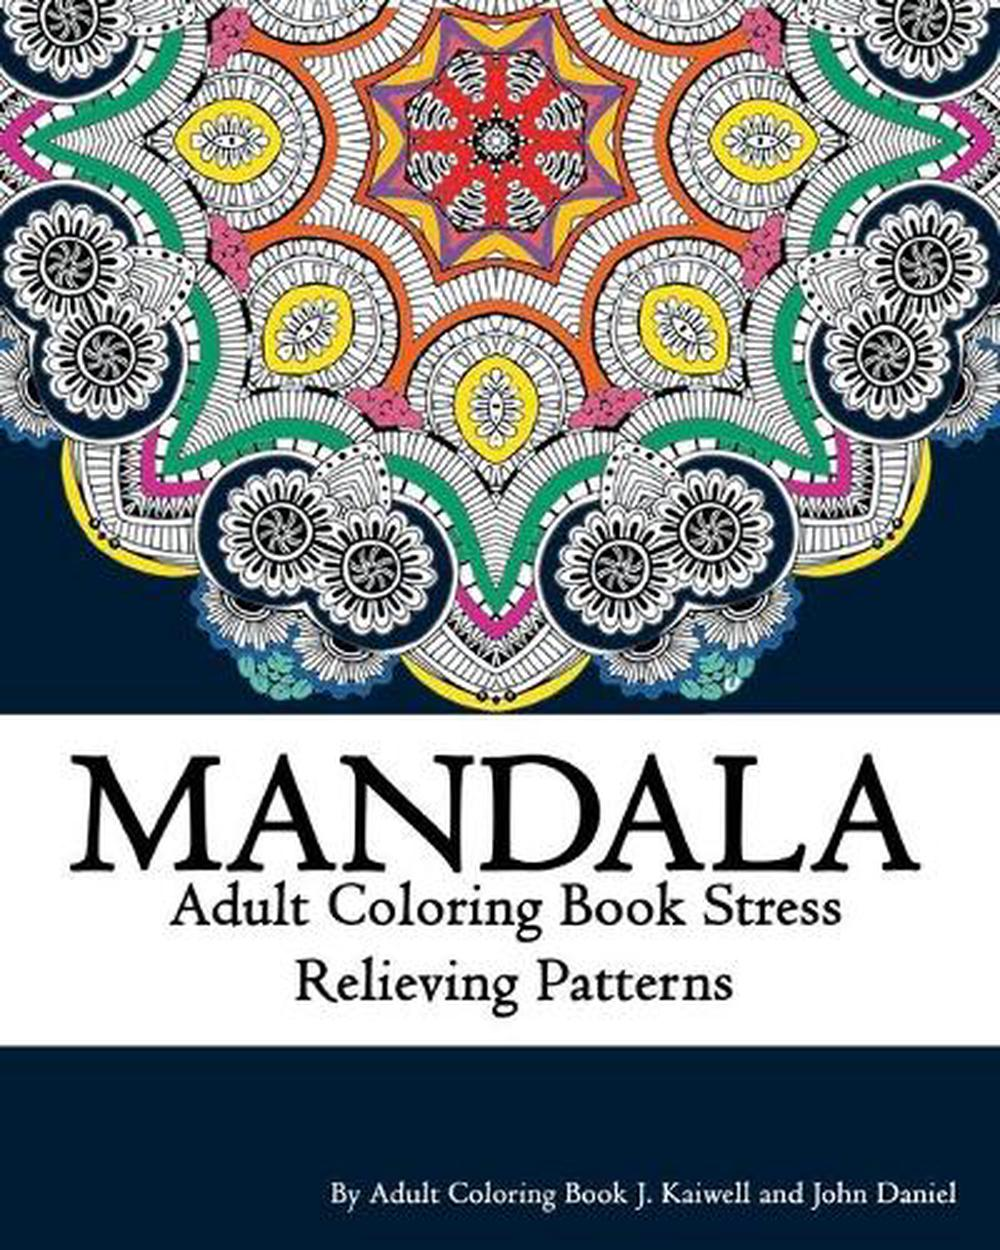 Mandala Adult Coloring Book Stress Relieving Patterns Relaxation Coloring Book 9781522851387 Ebay